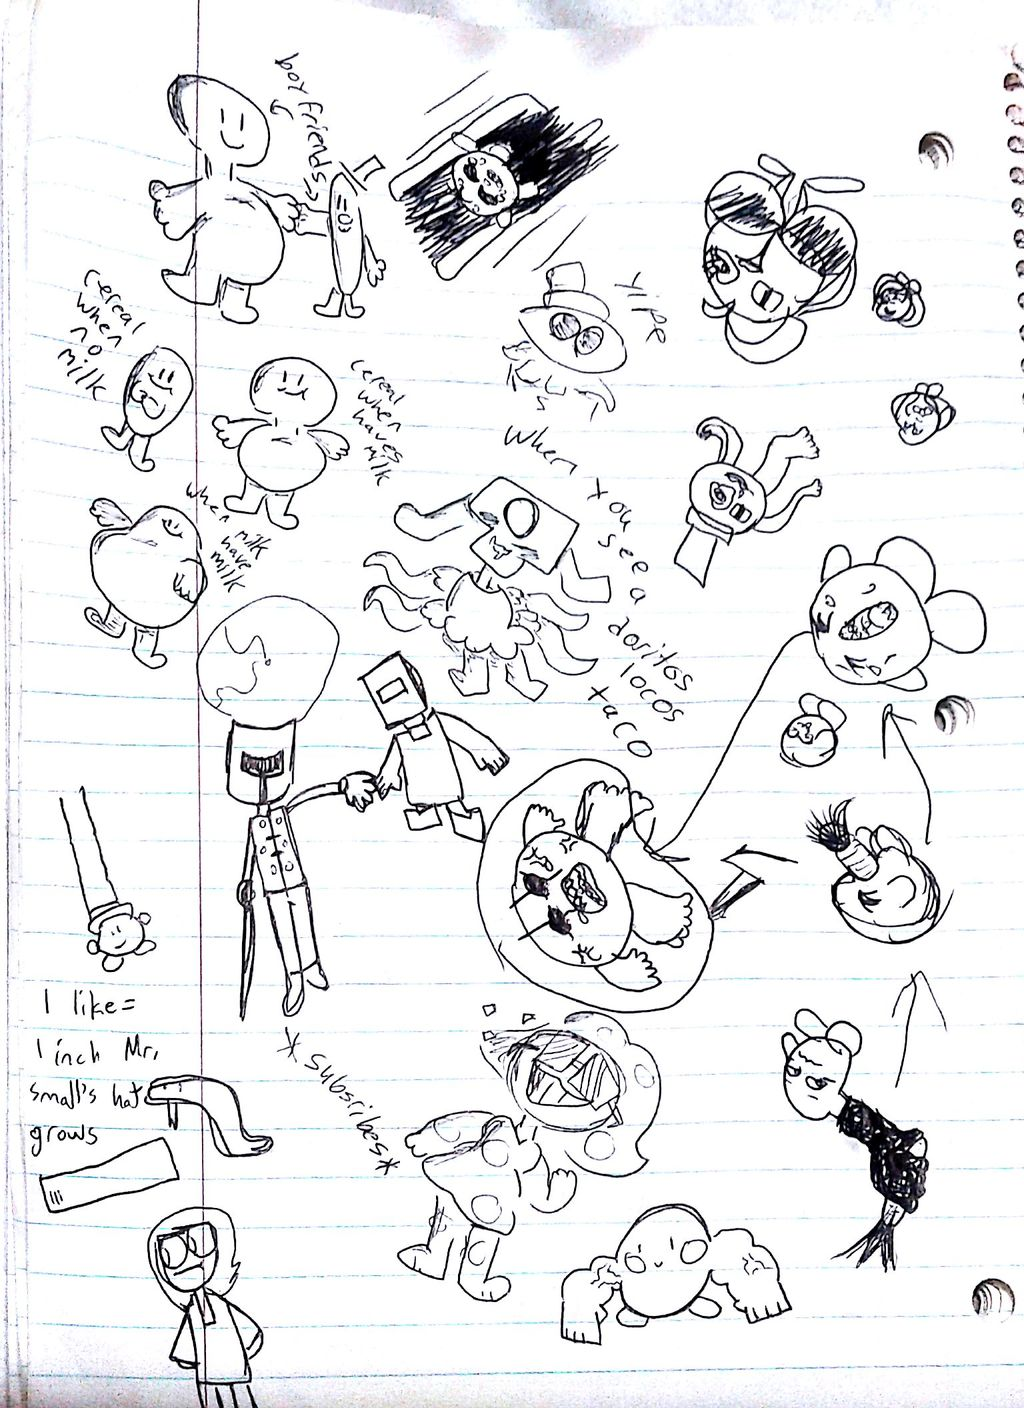 Doodles with siblings